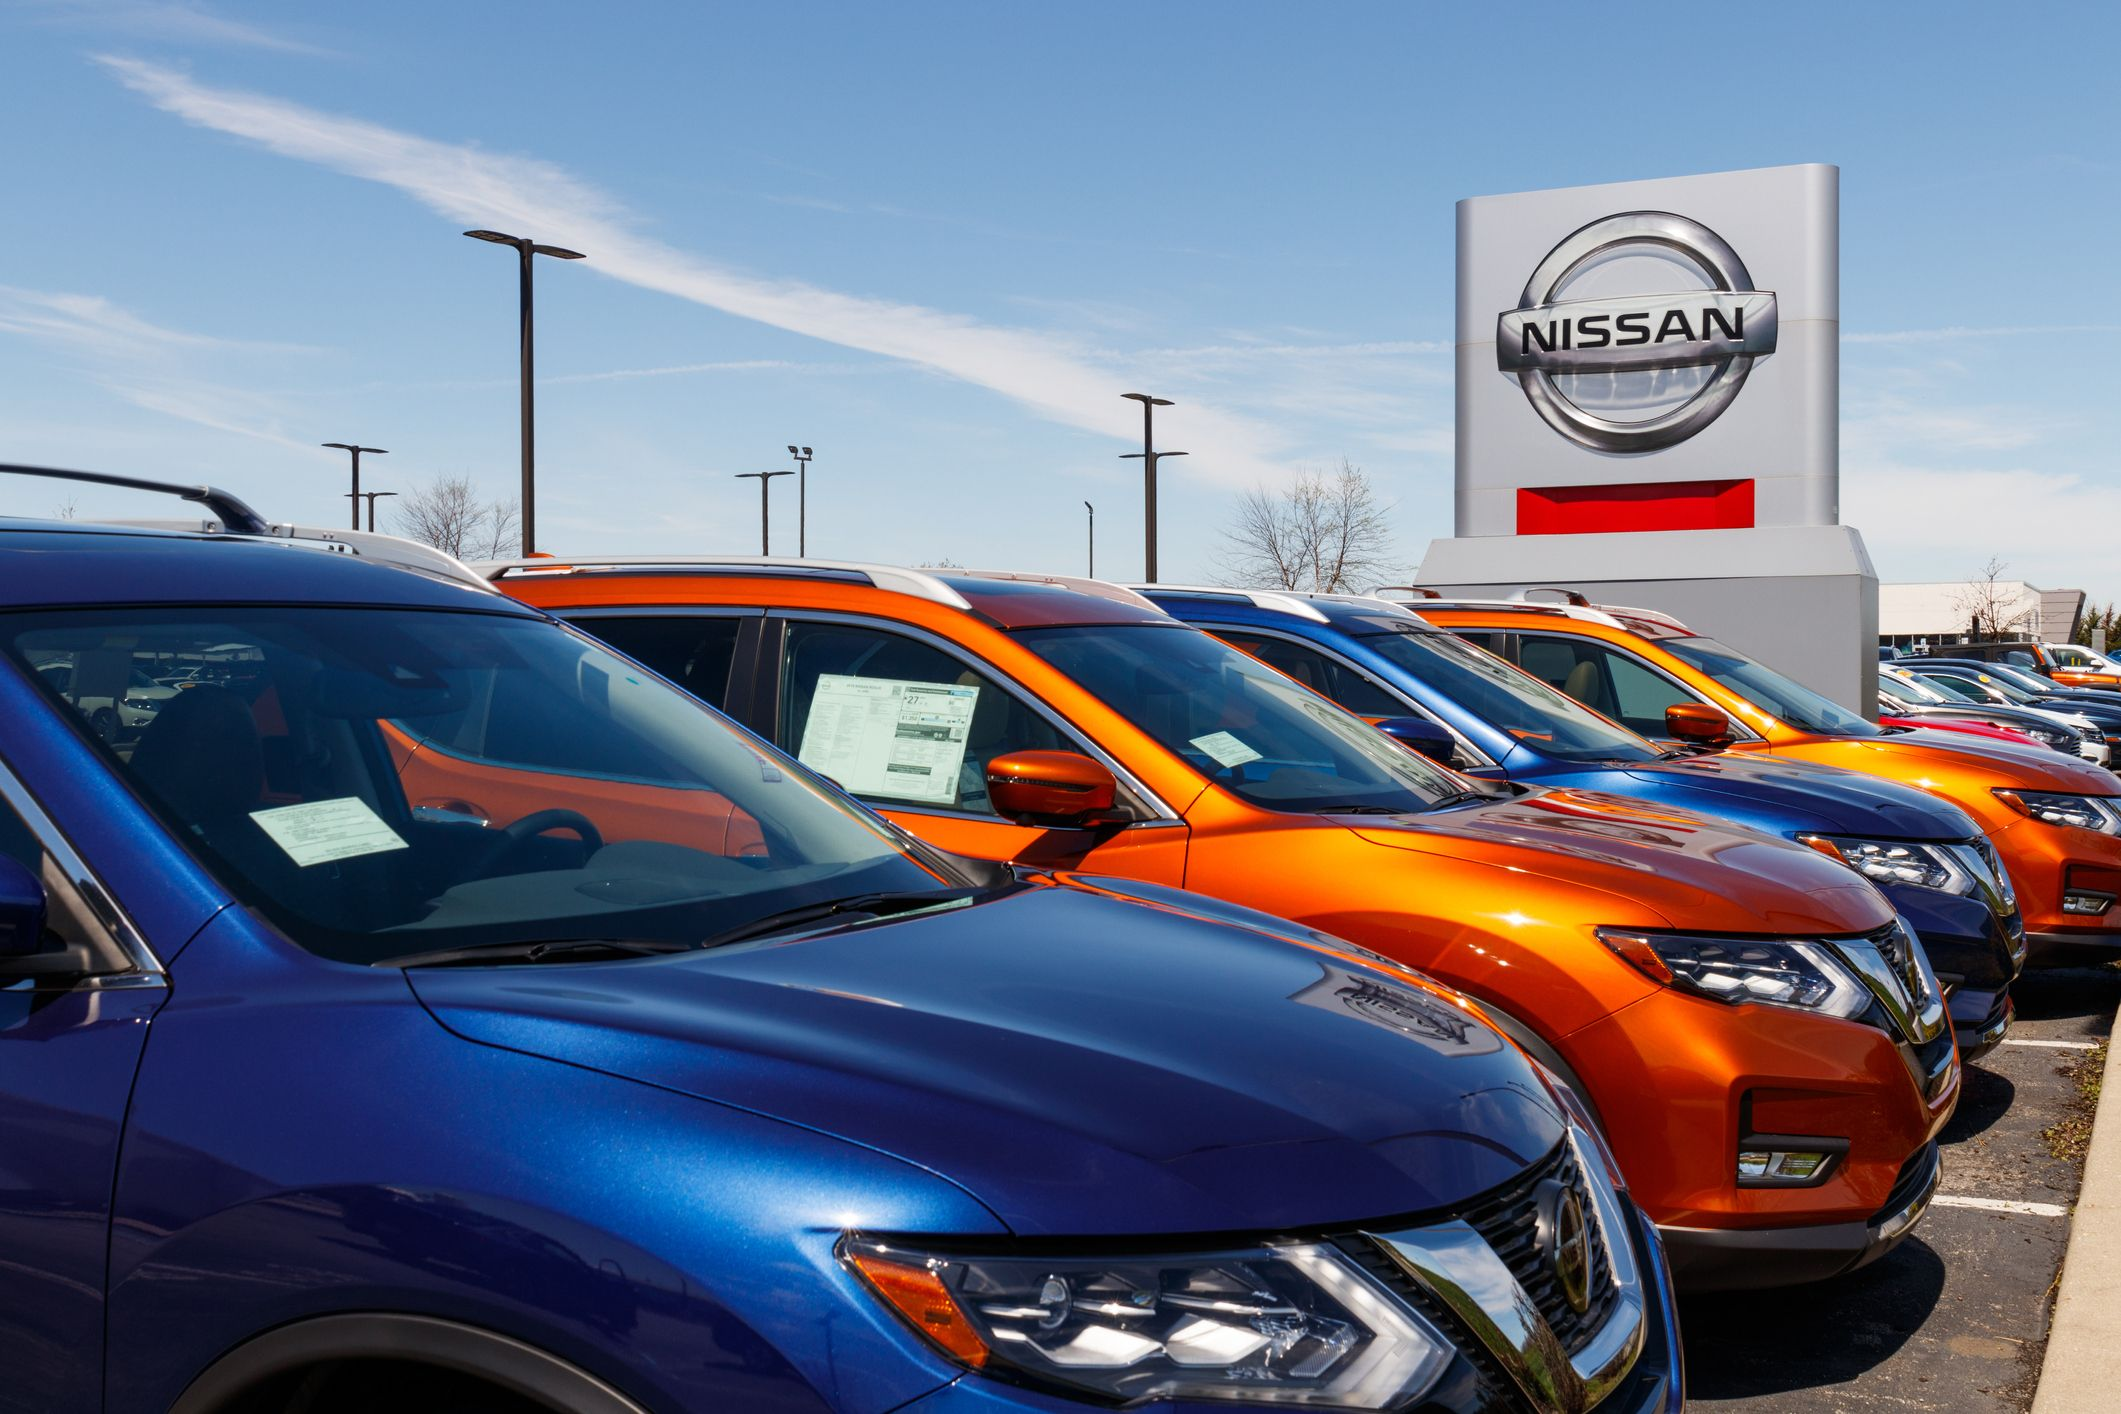 Nissan car and suv dealership nissan is part of the royalty free image 1590177540